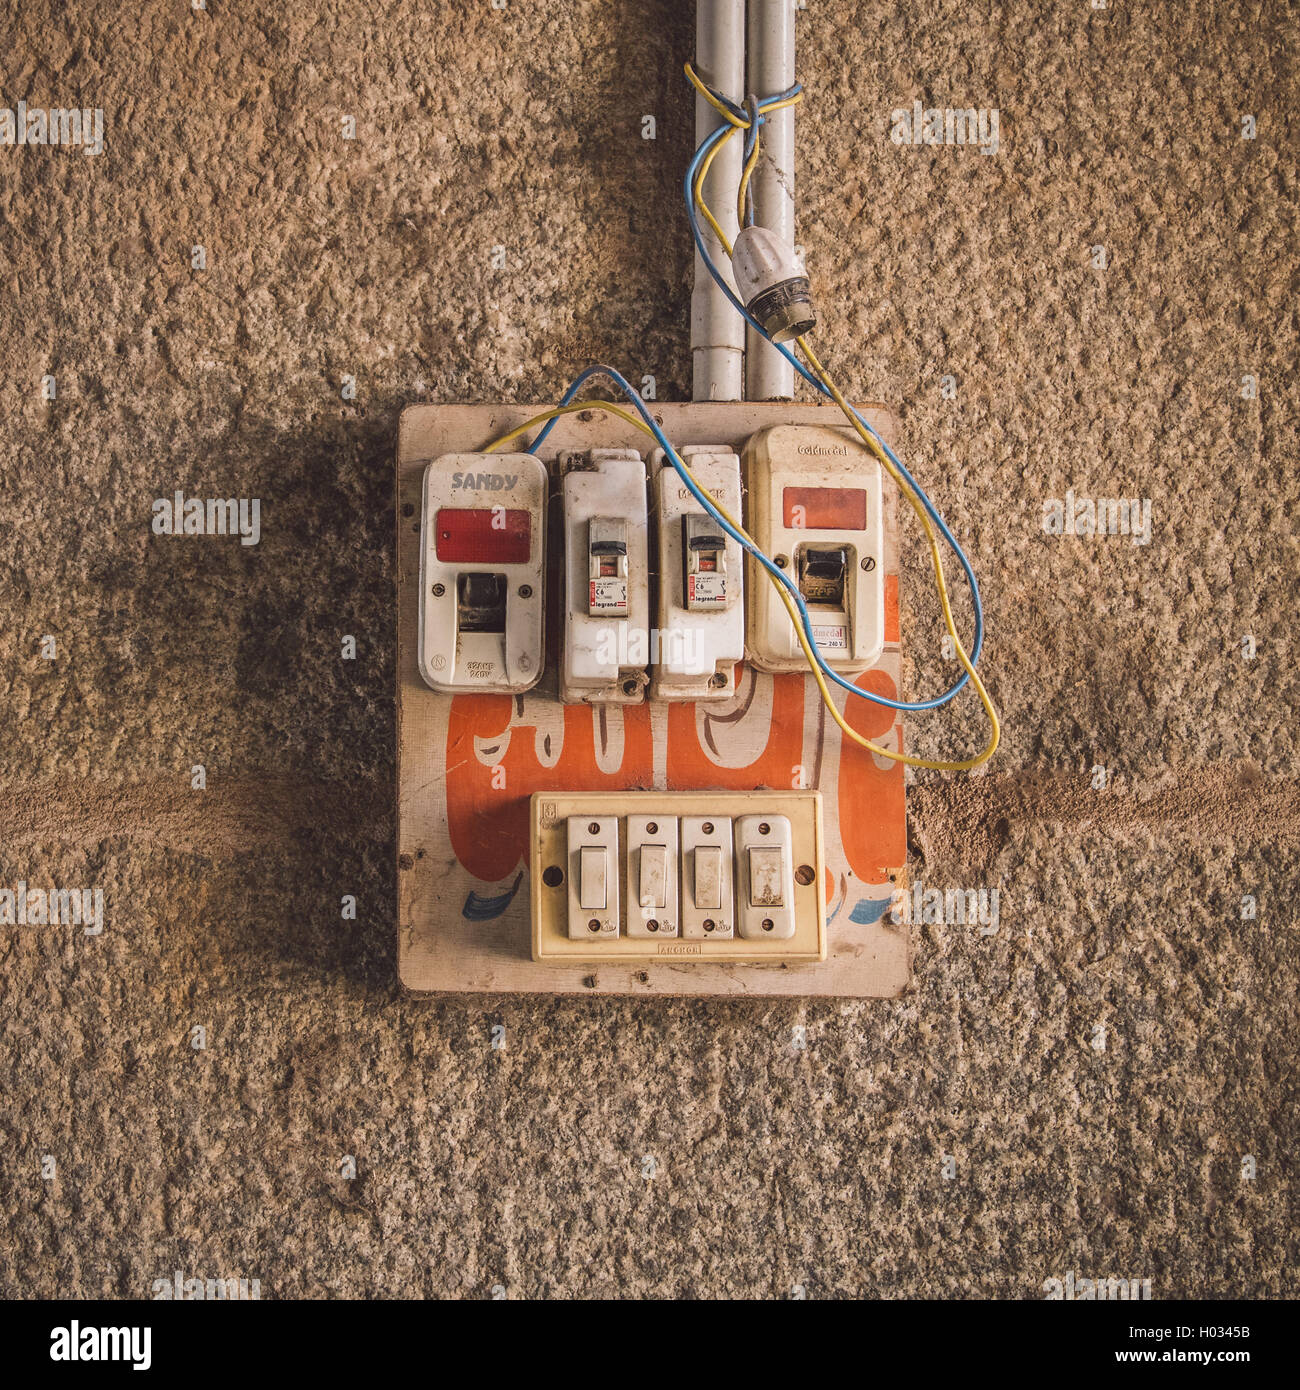 HAMPI, INDIA - 28 JANUARY 2015: Small safety fuse with switches on stone wall. Post-processed with grain, texture Stock Photo